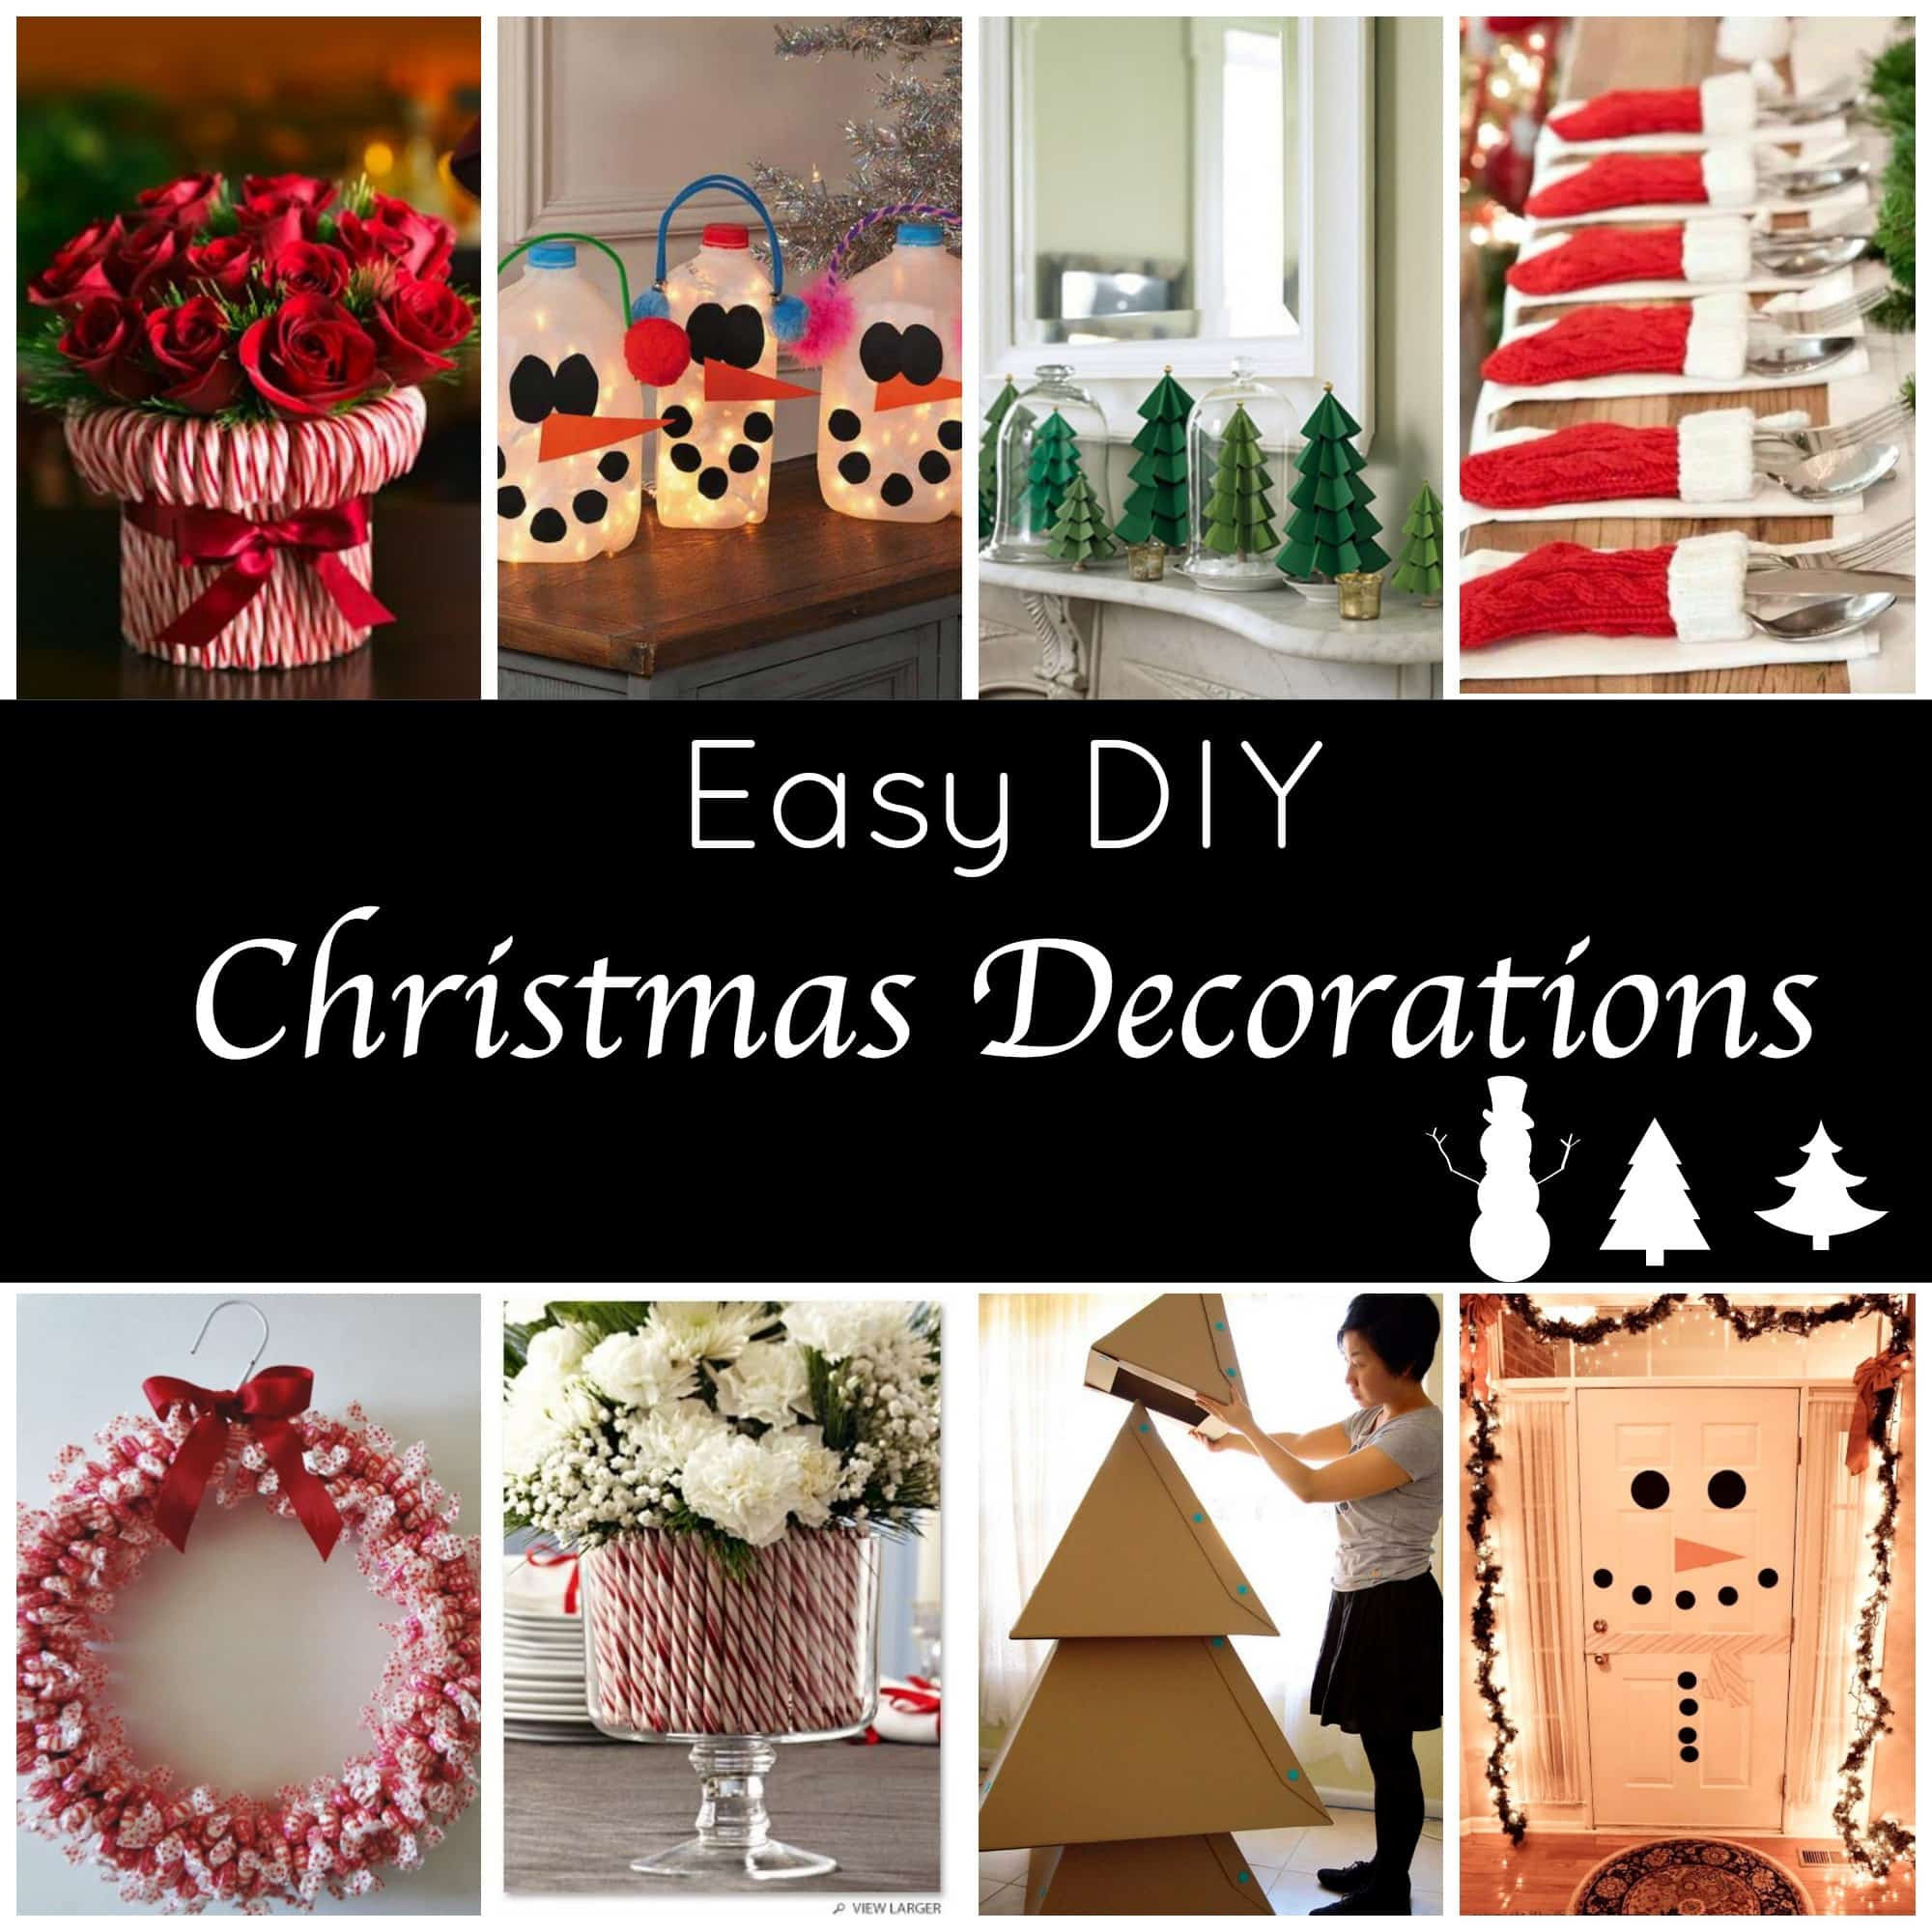 Best ideas about Christmas DIY Decoration Ideas . Save or Pin Cute and Easy DIY Holiday Decorations for a Festive Home Now.